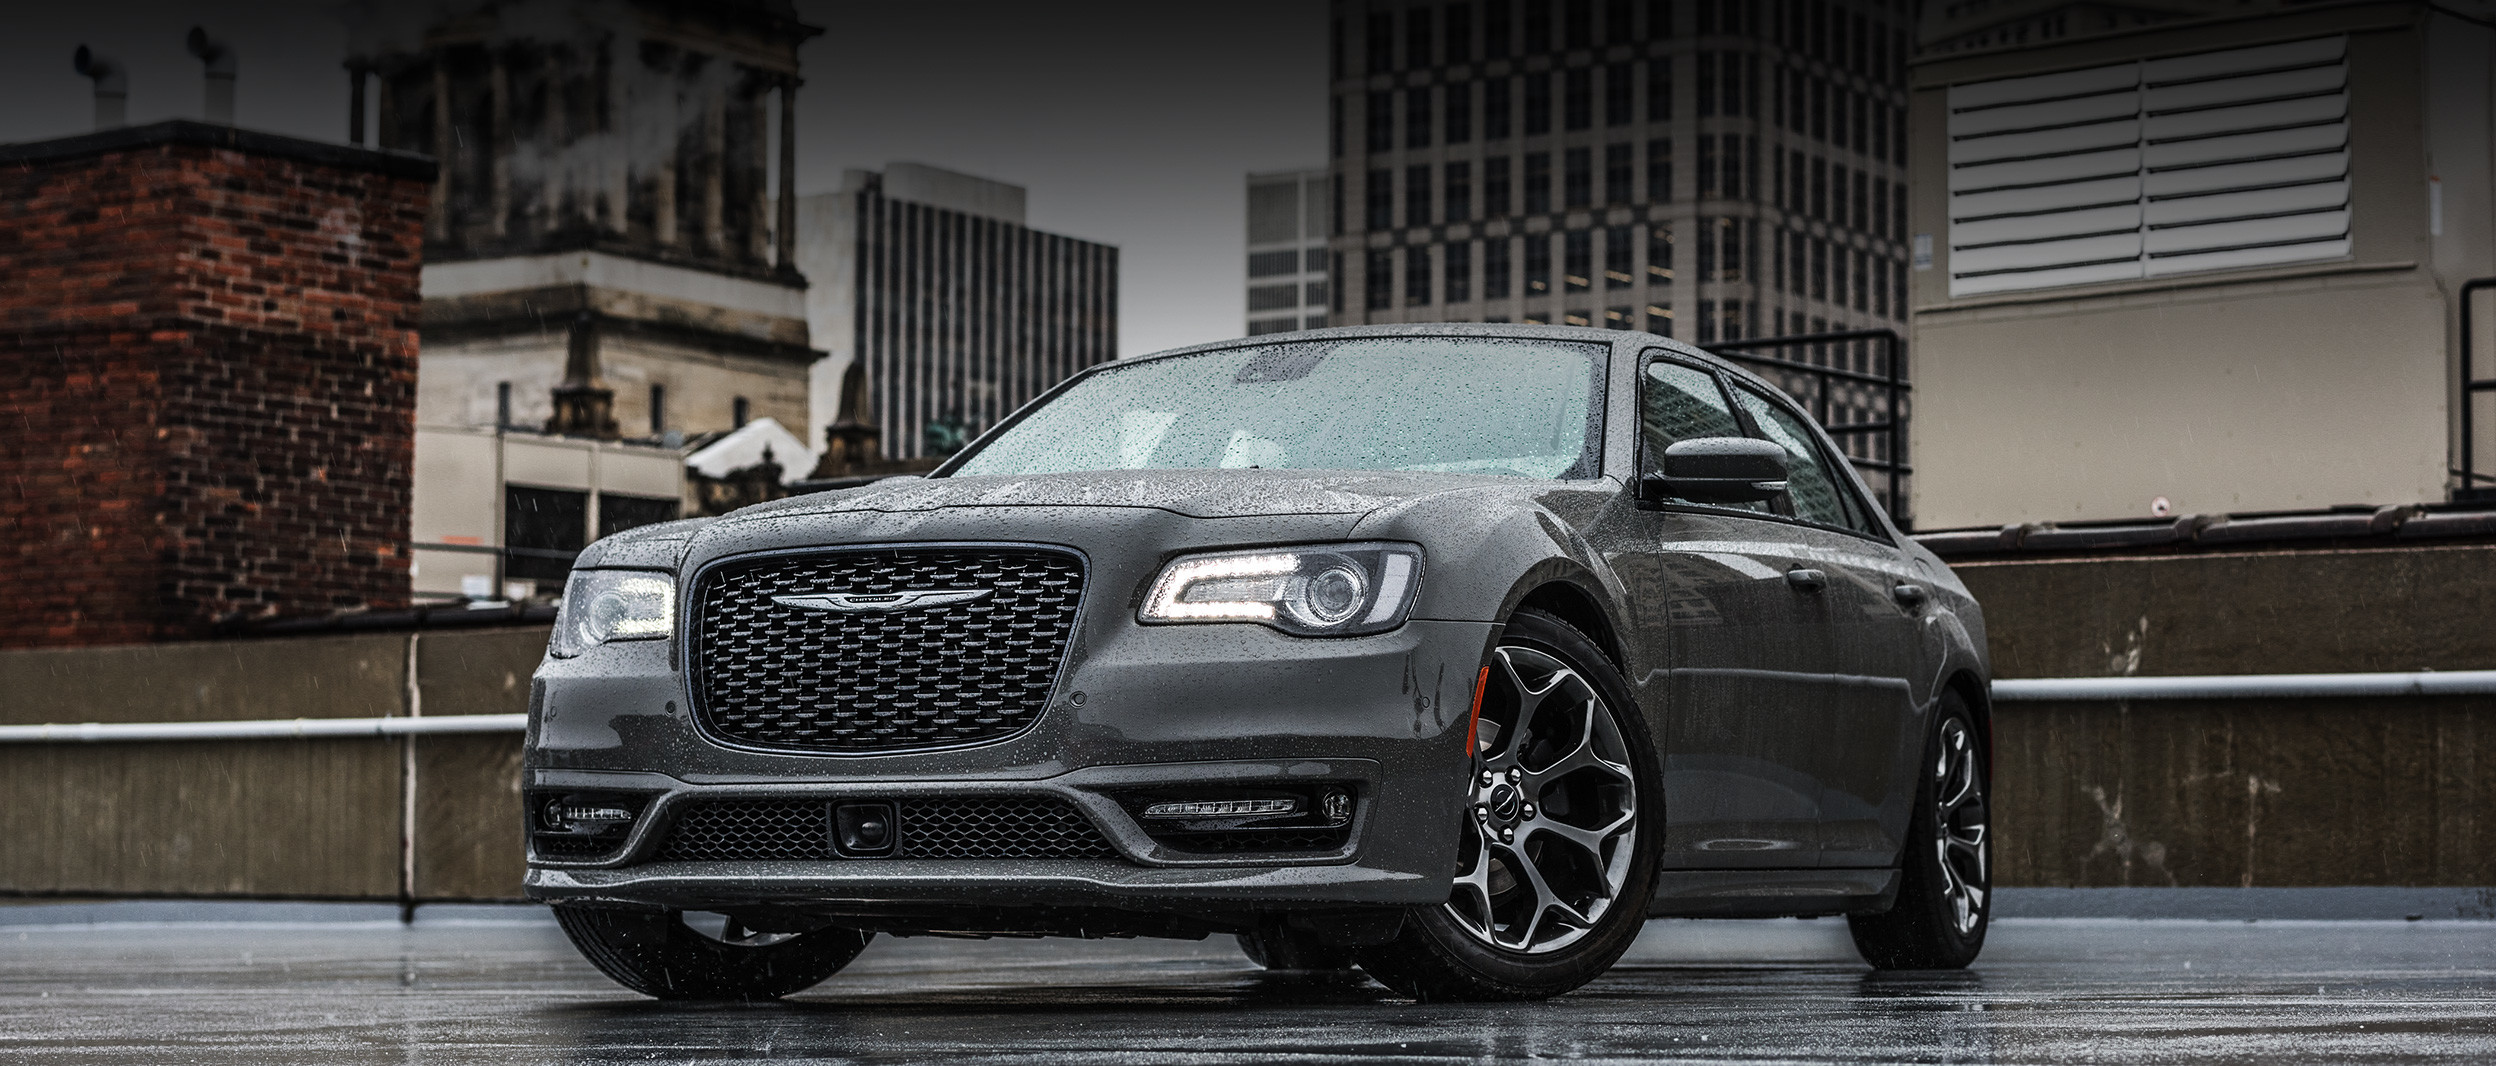 Grey 2020 Chrysler 300, parked outside in a city in the rain.